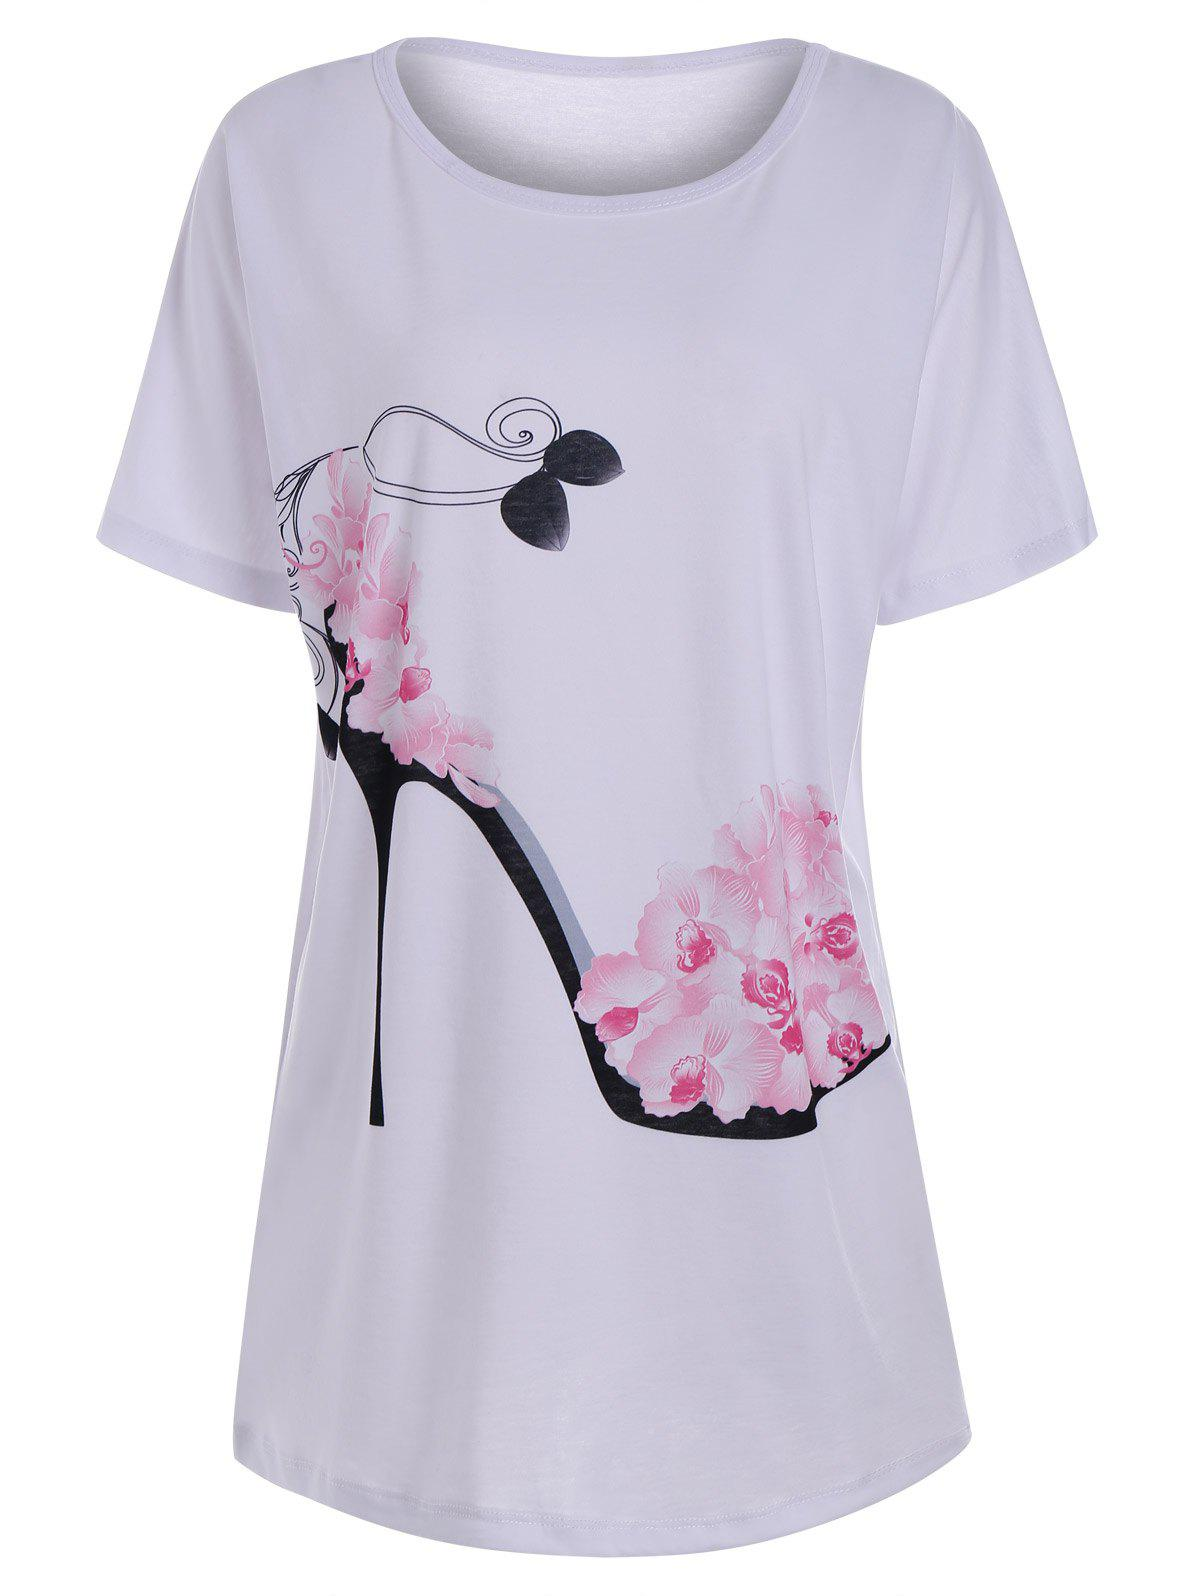 Chic Floral High Heel Print Tunic T Shirt